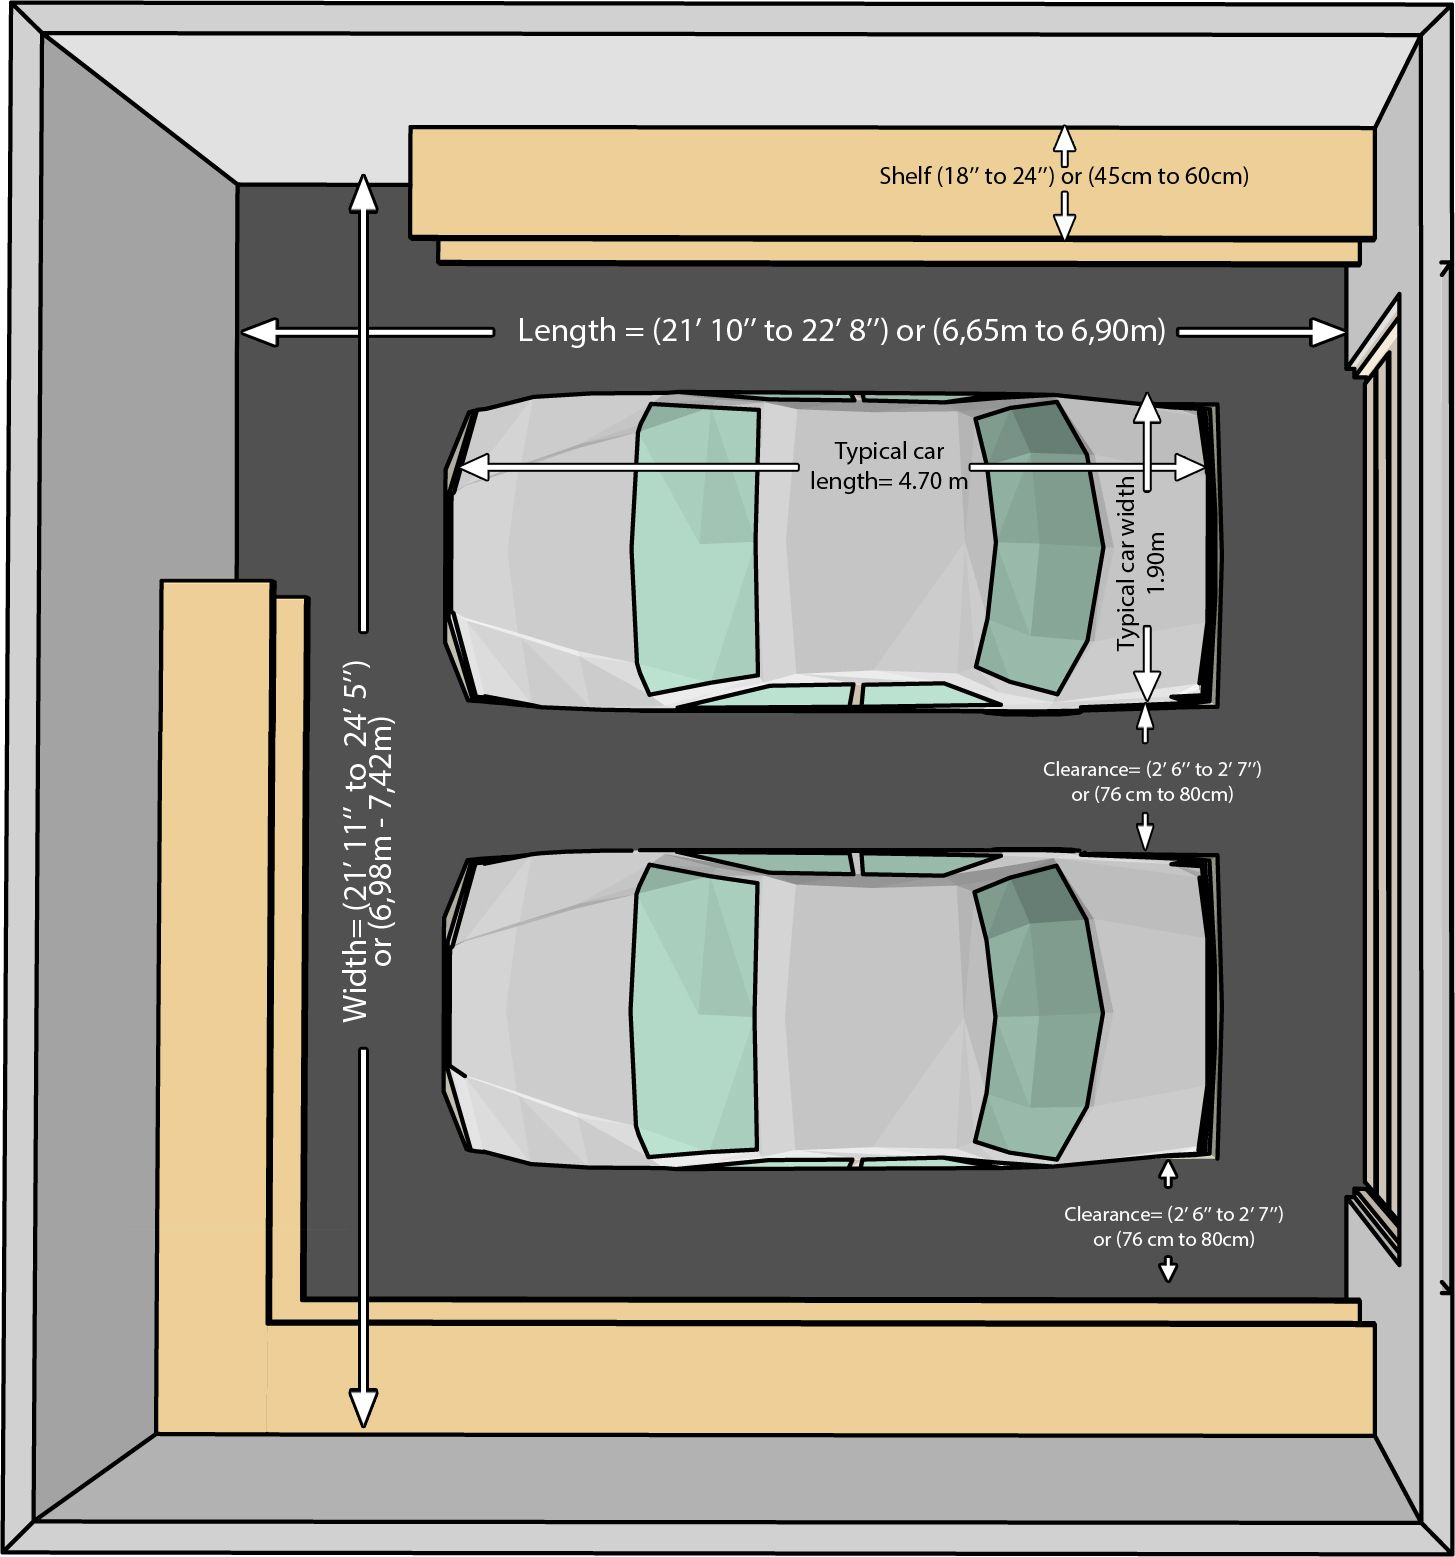 Standard Door Sizes Australia Garage For Two Cars Garage Measurements For Two Cars